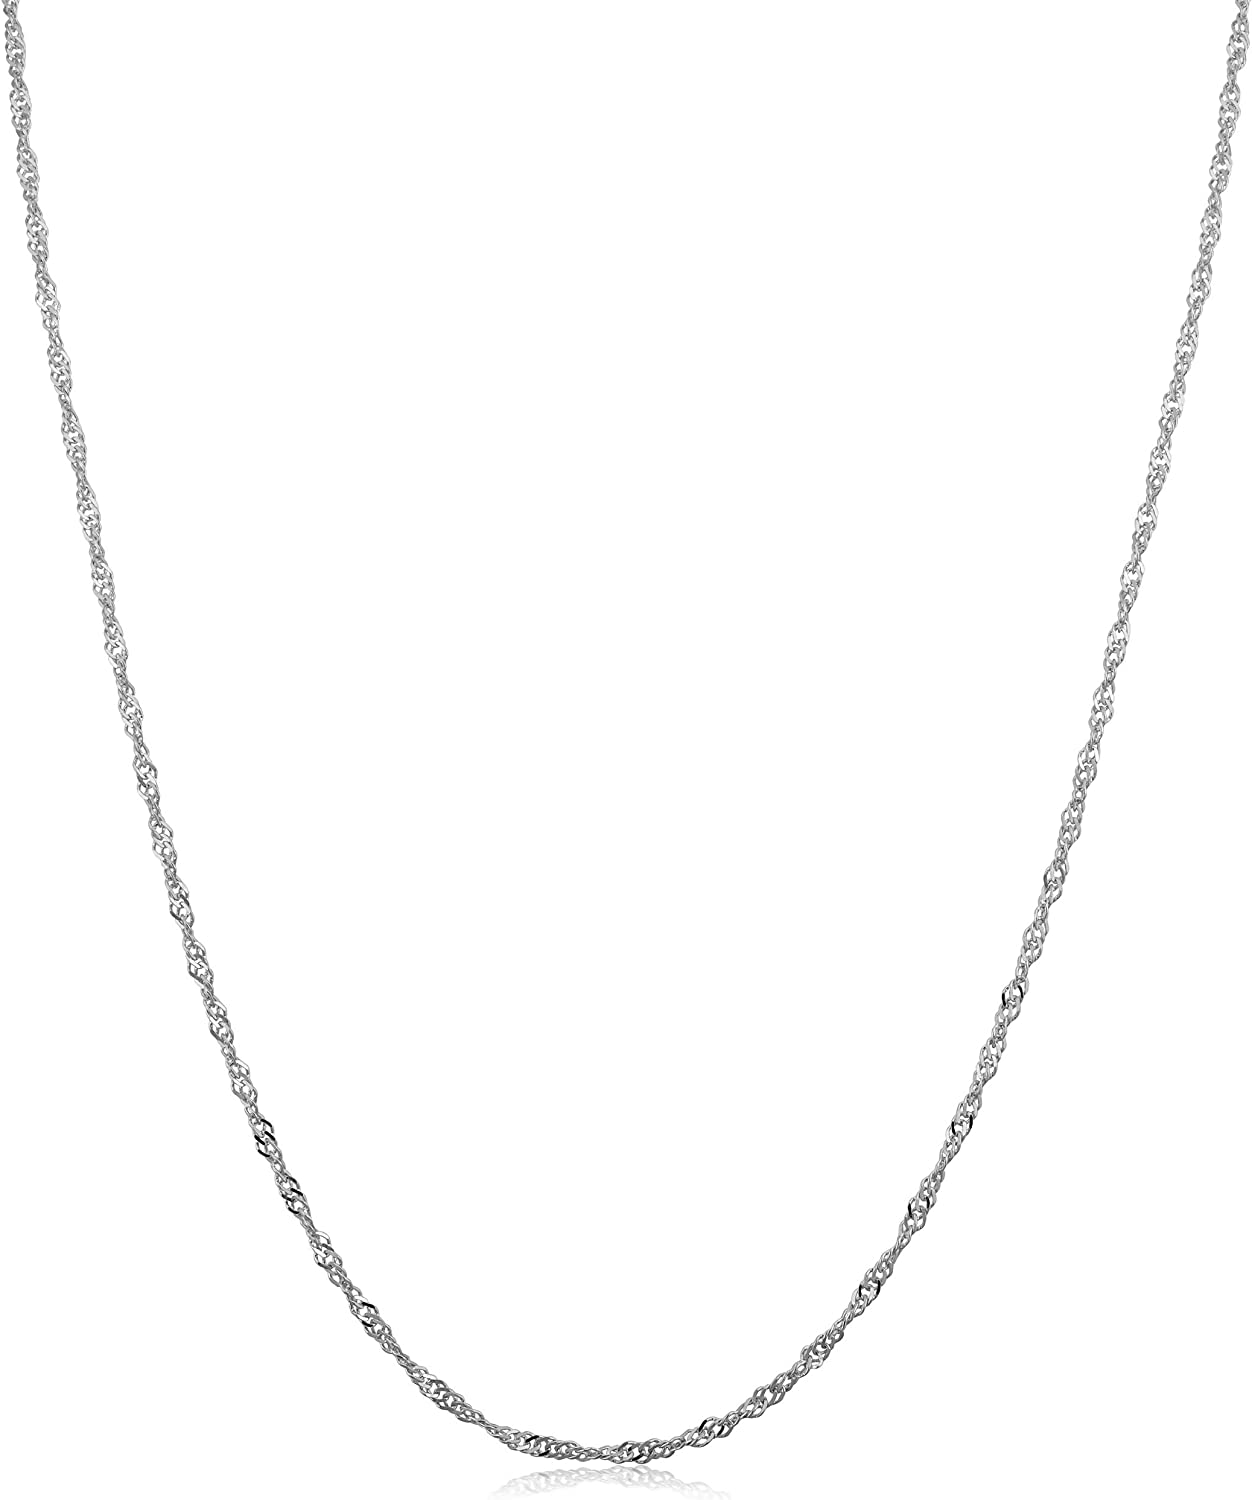 Direct sale of manufacturer Kooljewelry 14k White Gold Singapore Chain 1 0.7 mm Ranking TOP2 Necklace m